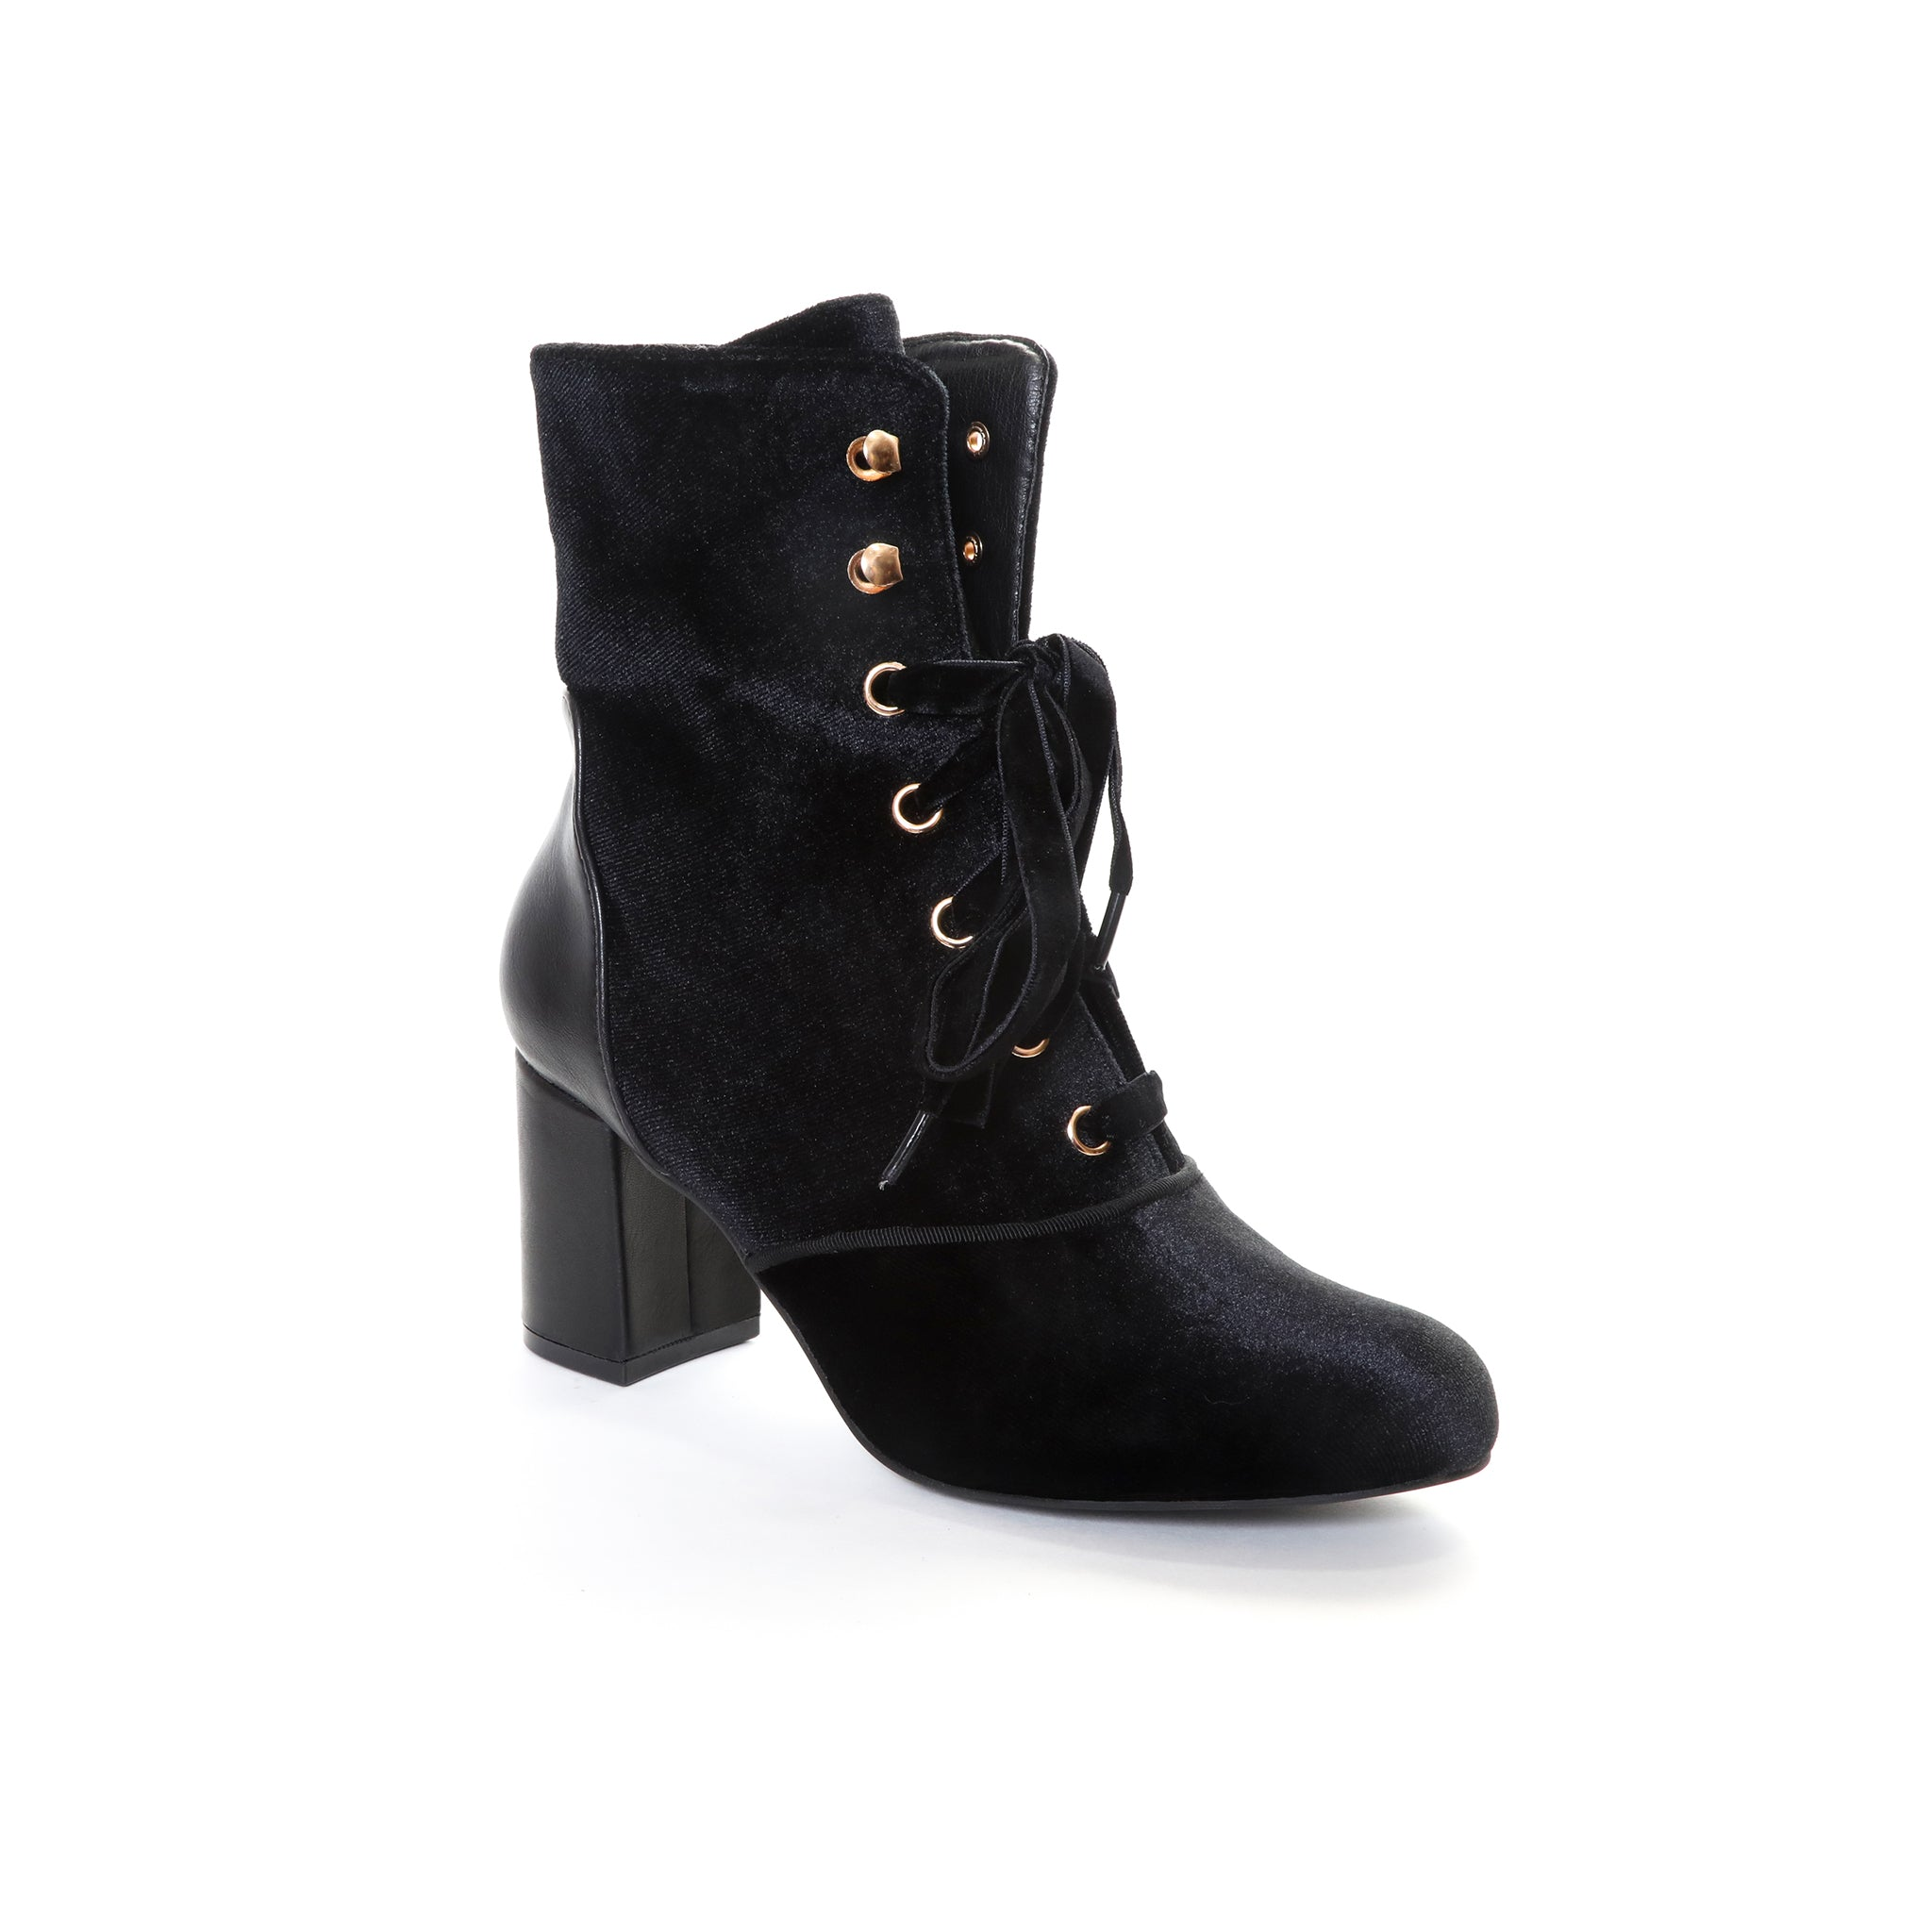 Claudia by Dolce Nome | Lace Up Heel Boots in Black (main view)